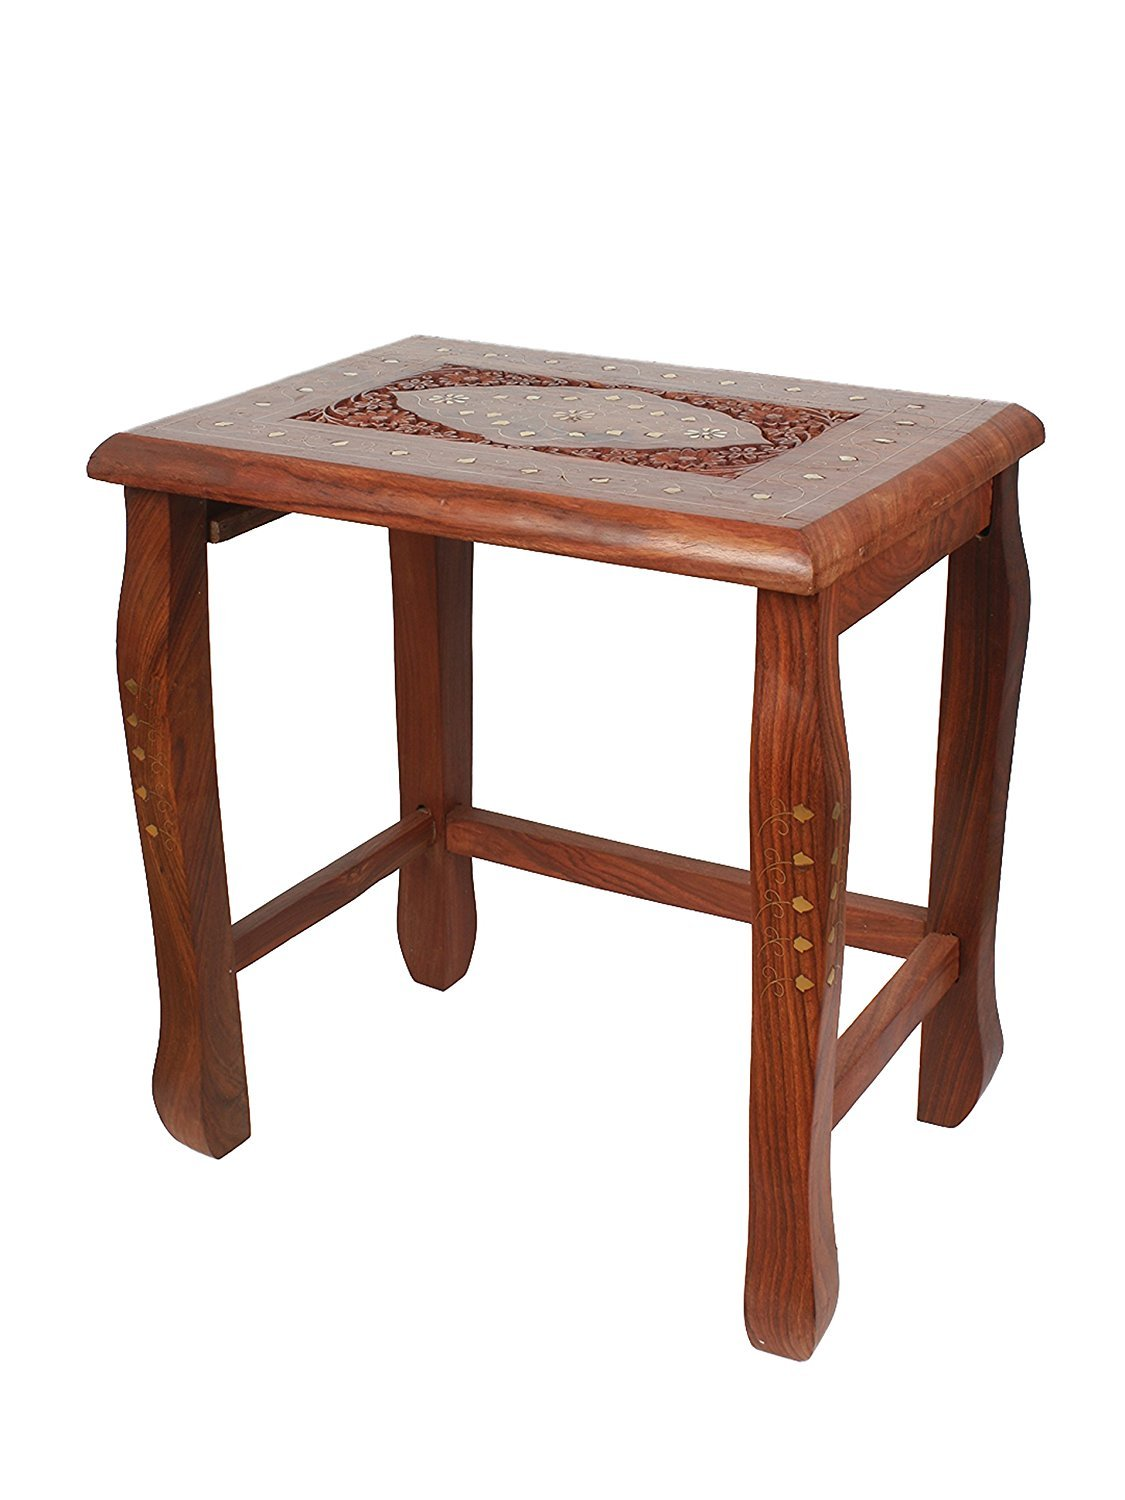 Insignia Wood Nesting Tables with Brass Work (Set of 4)